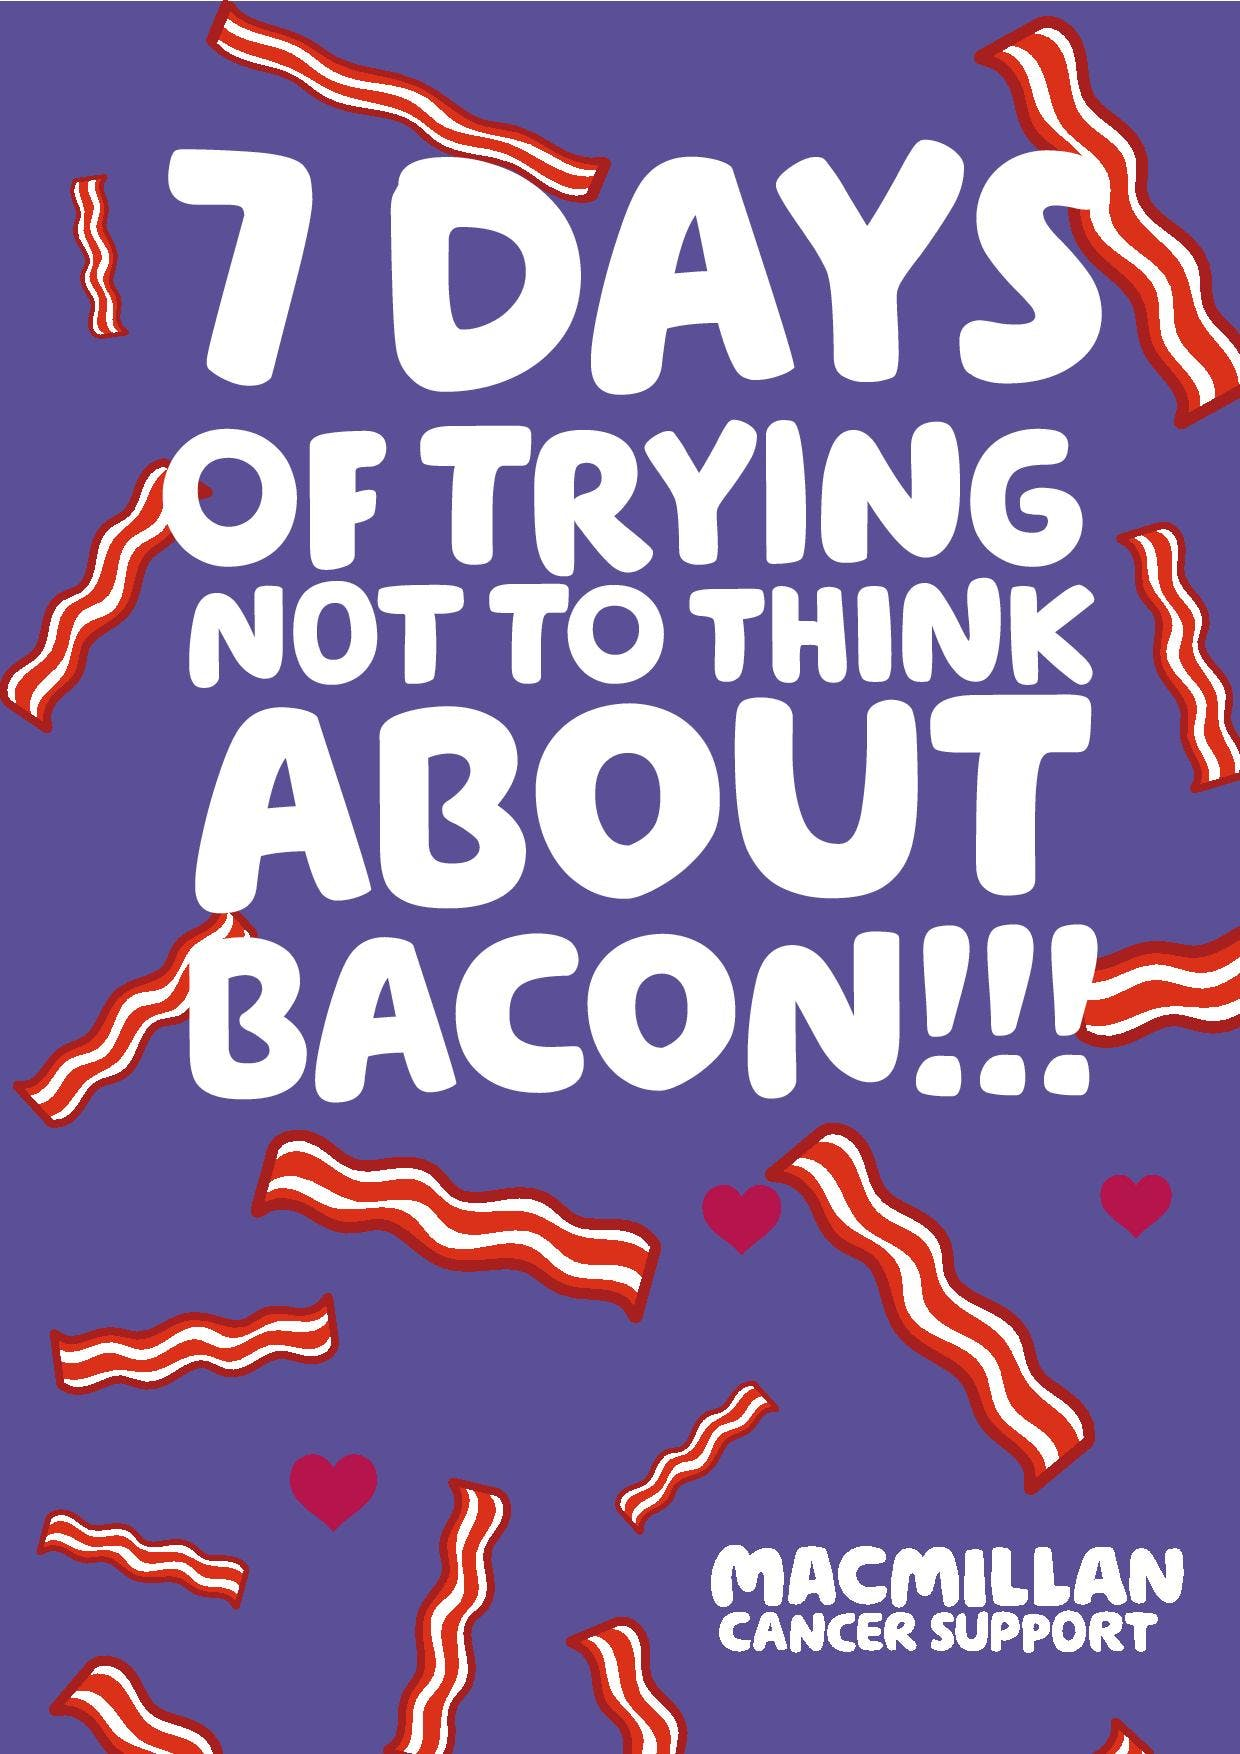 Purple background text: 7 days of trying not to think about bacon!!!